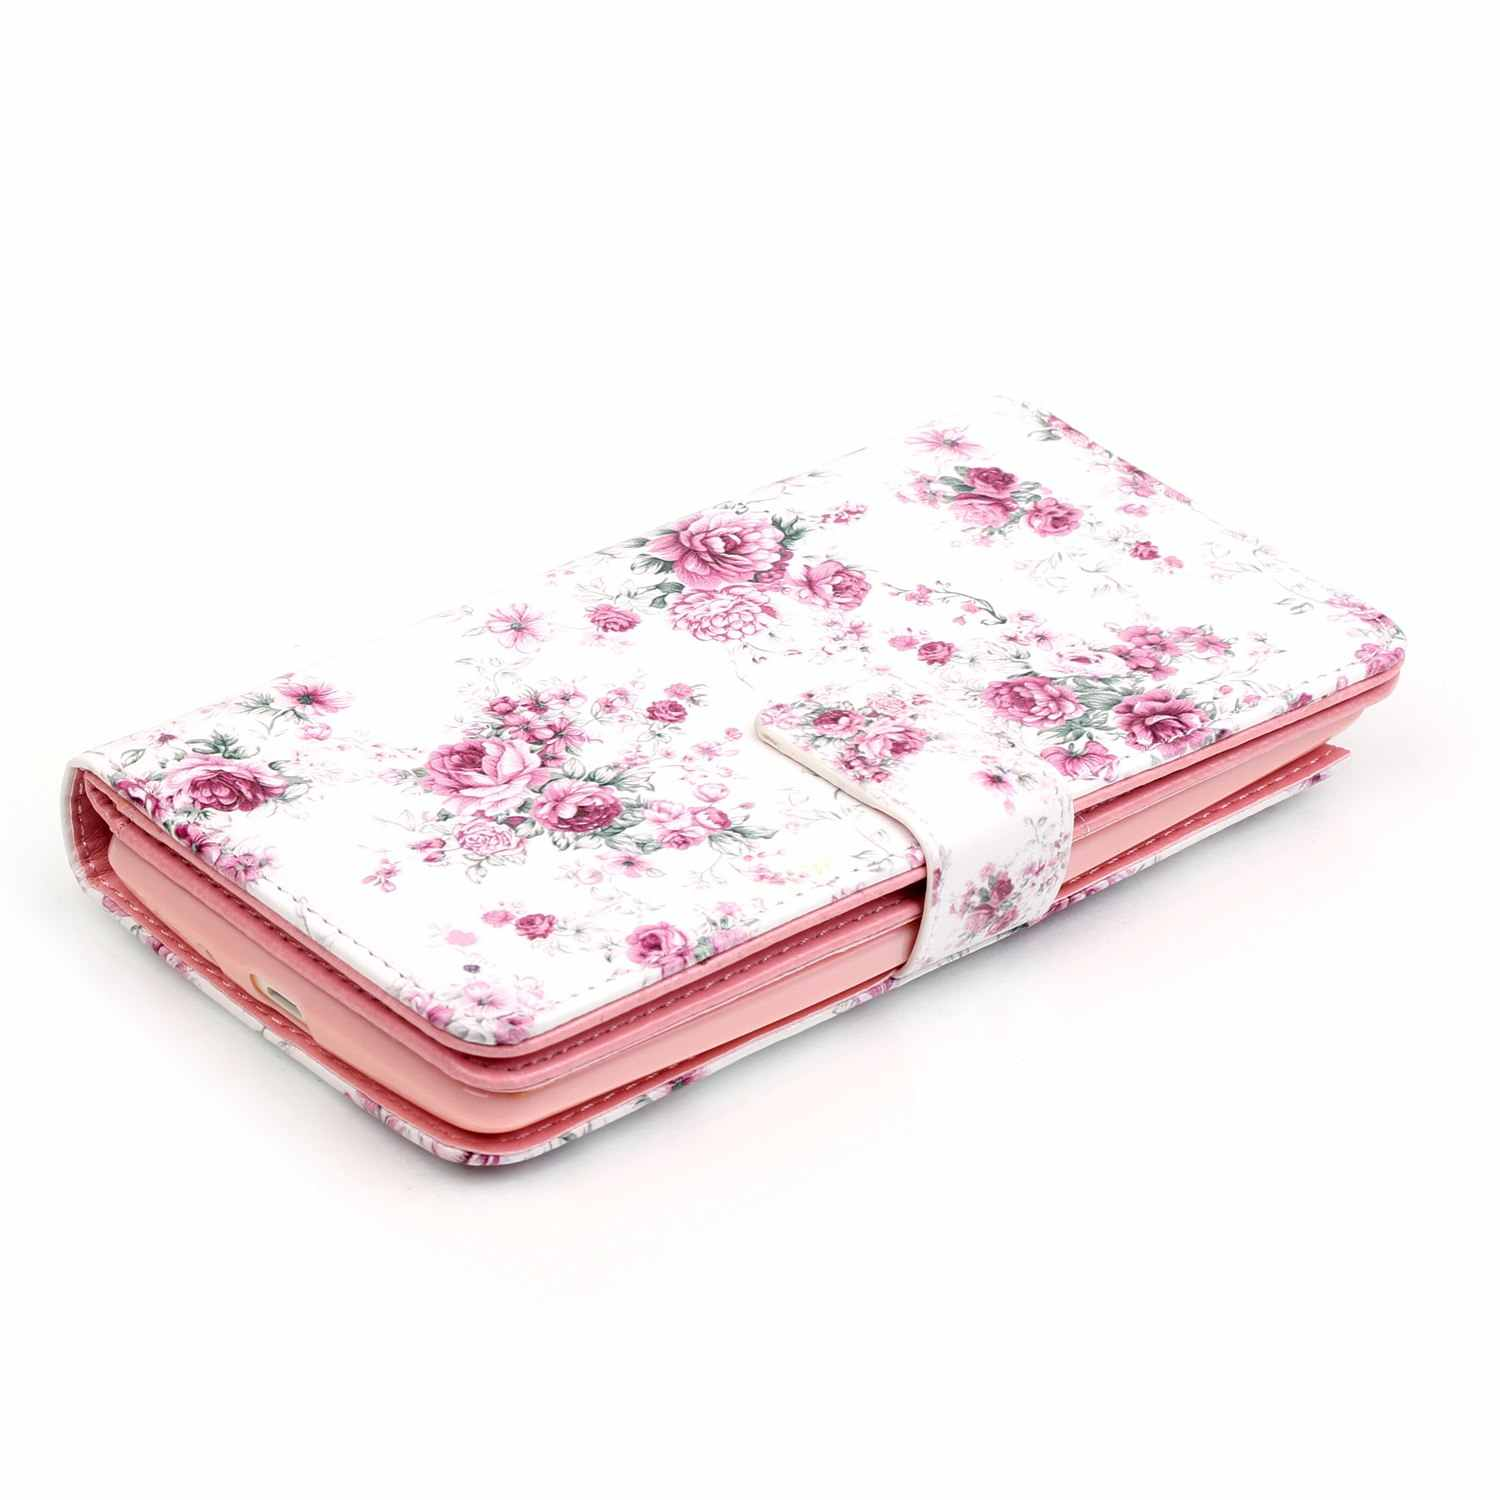 9 Card Holder Wallet Phone Cases For LG G4 Stylus Luxury PU Leather Flip Case For LG G StyloH630 H634 H635 H540 H540F LS770 Capa